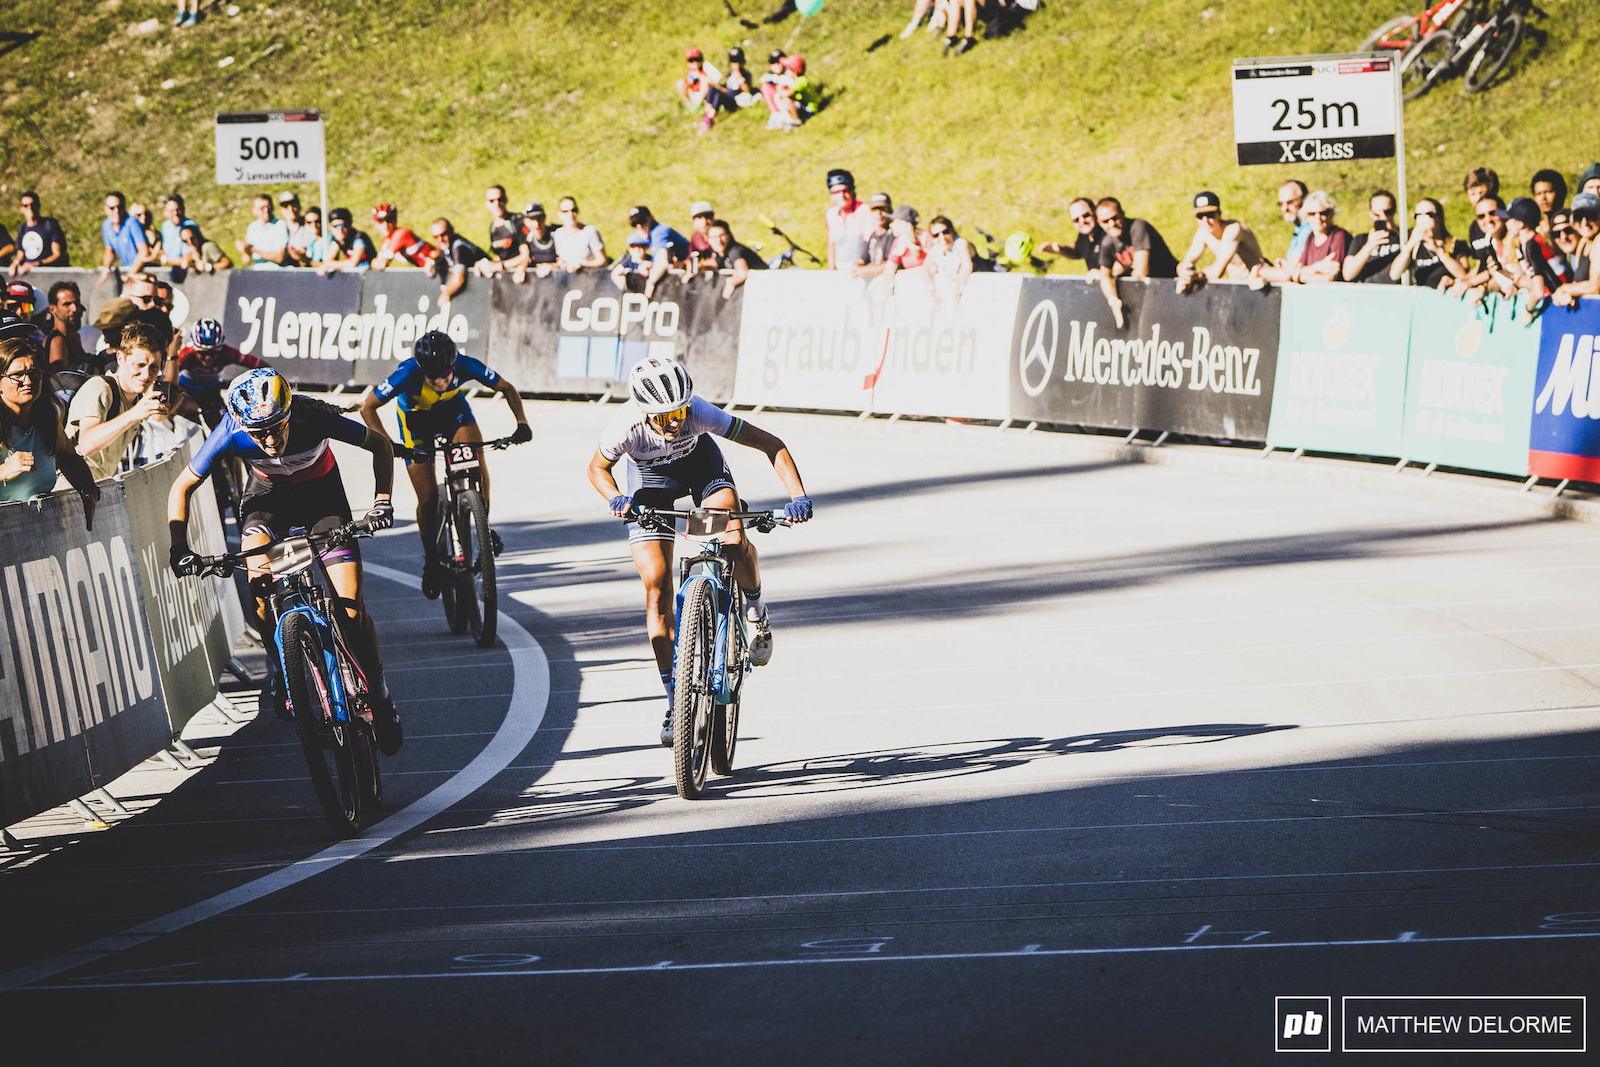 Neff and Prevot sprint for the finish.